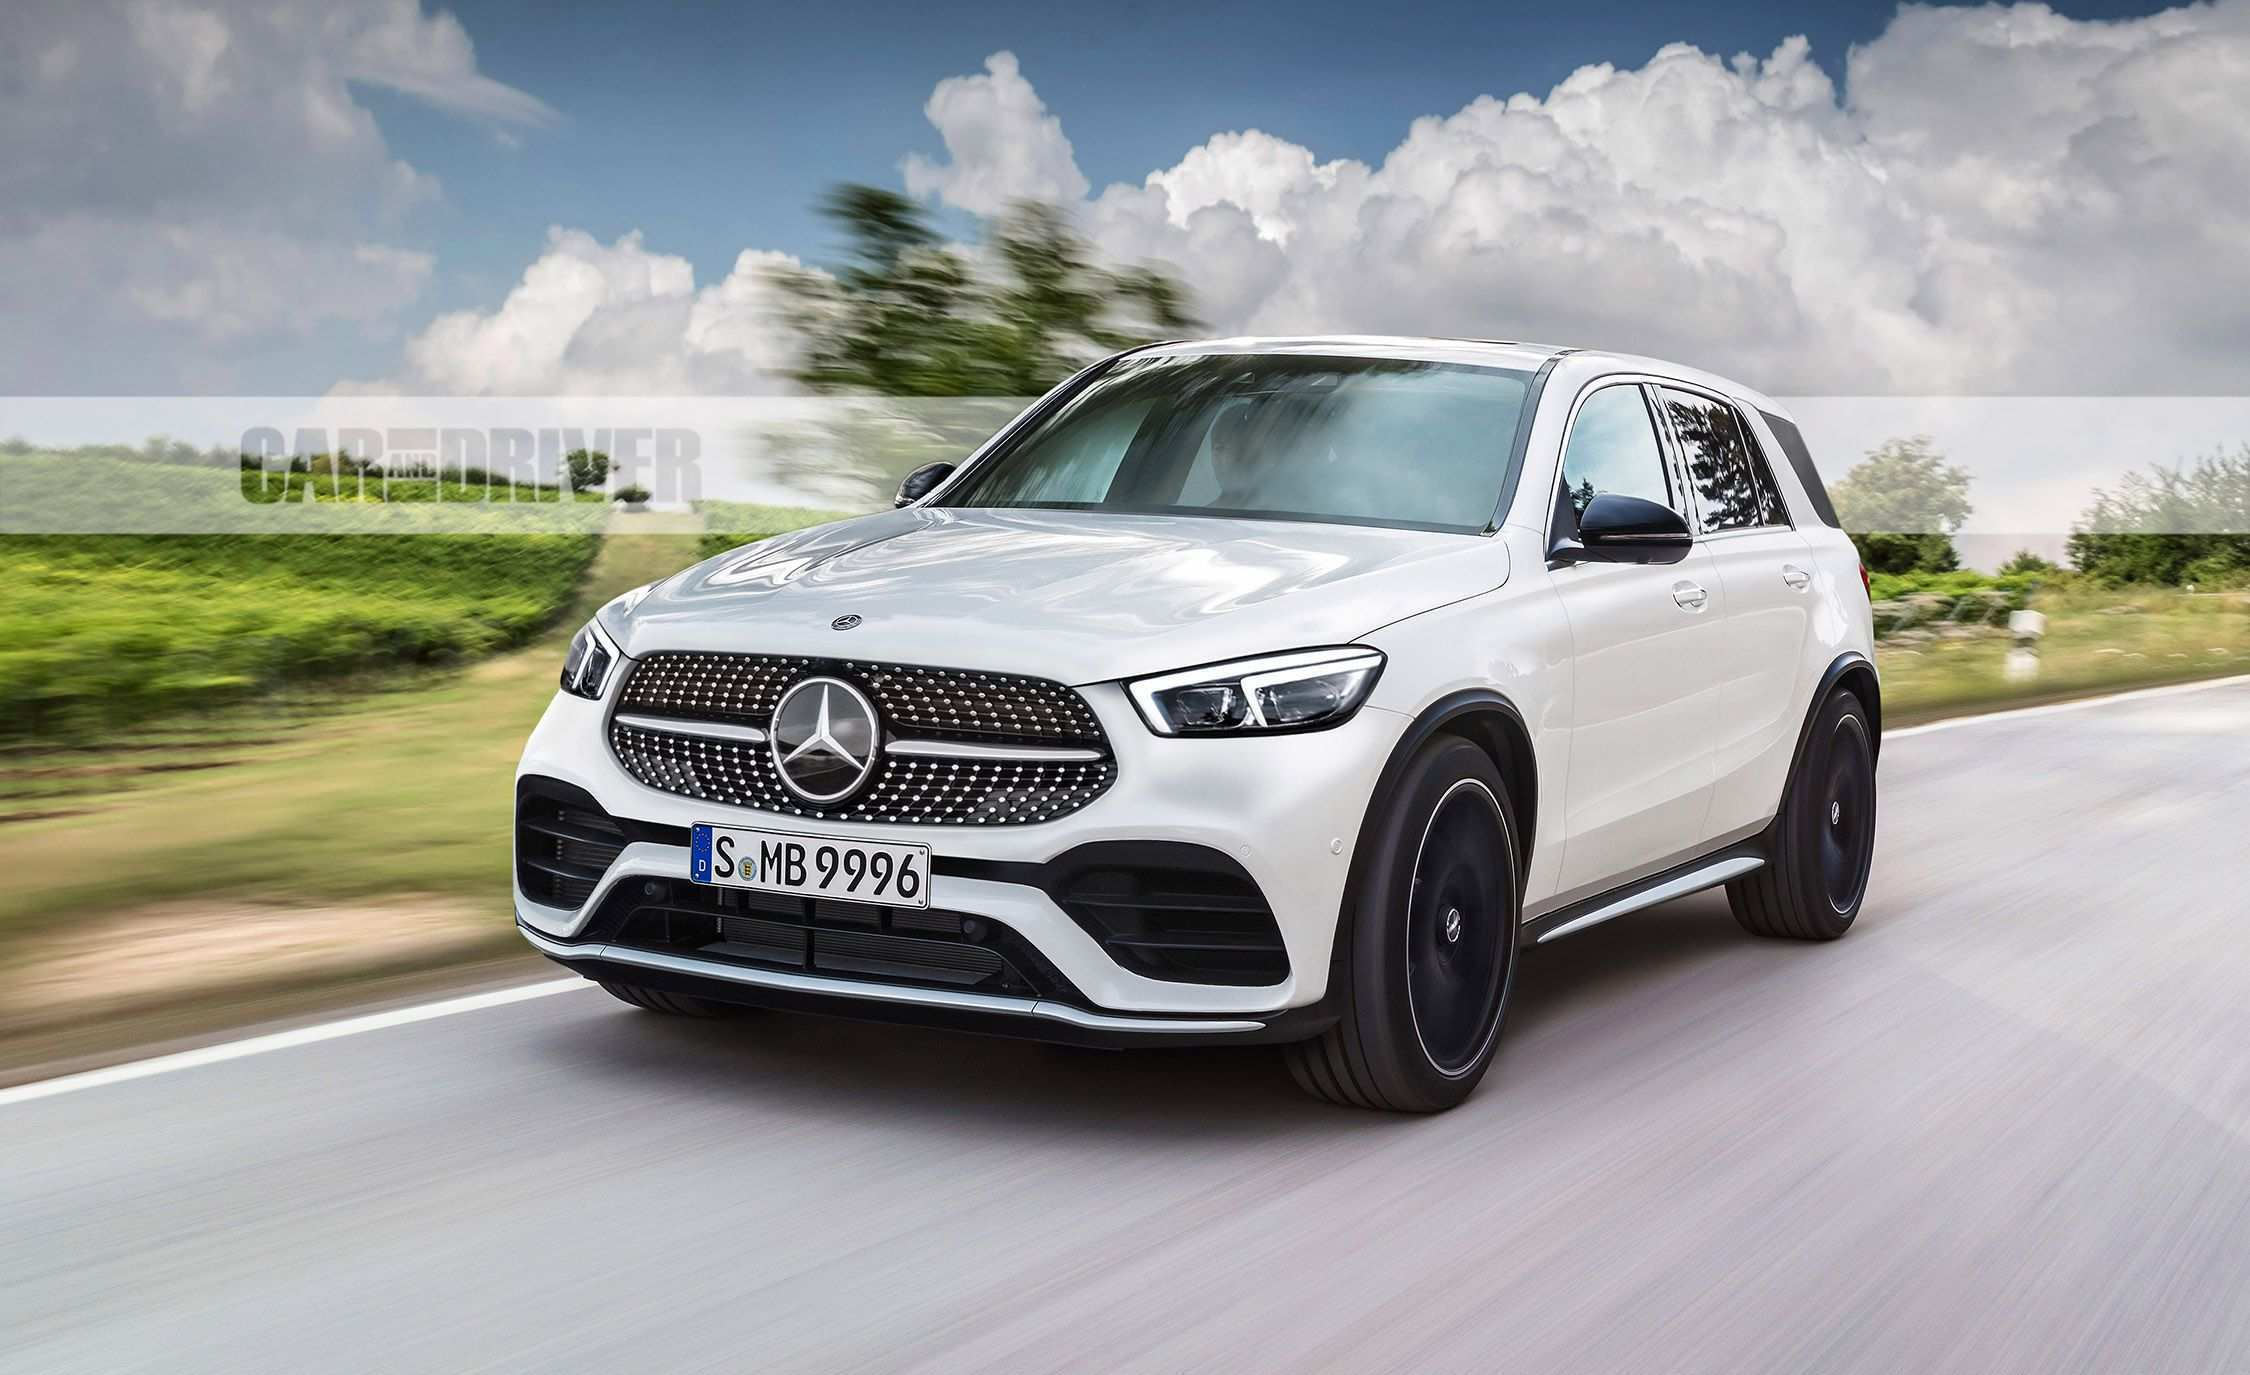 91 All New Mercedes M Class 2019 Pictures for Mercedes M Class 2019